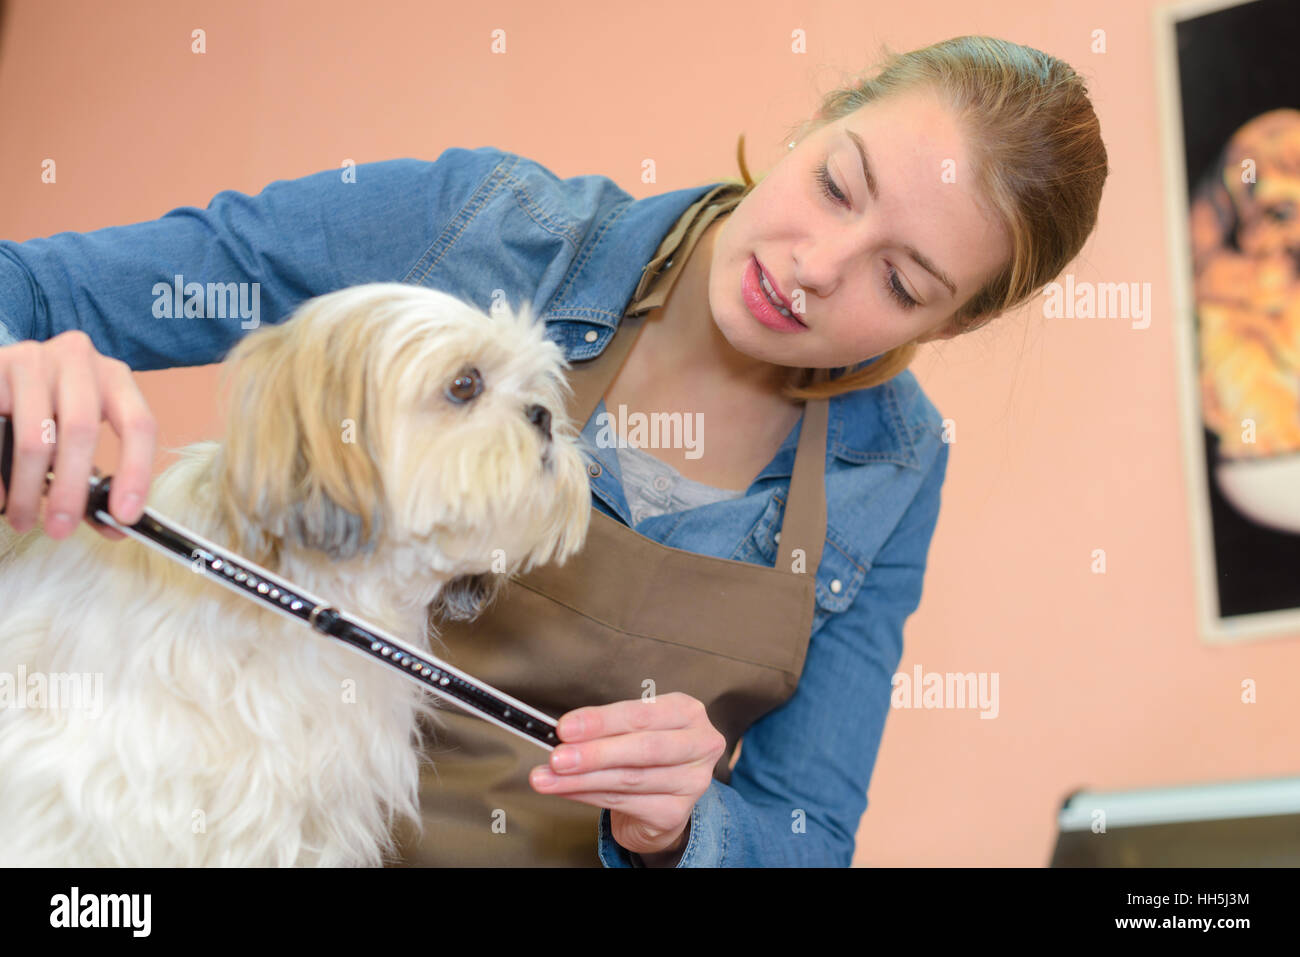 measuring the dog - Stock Image